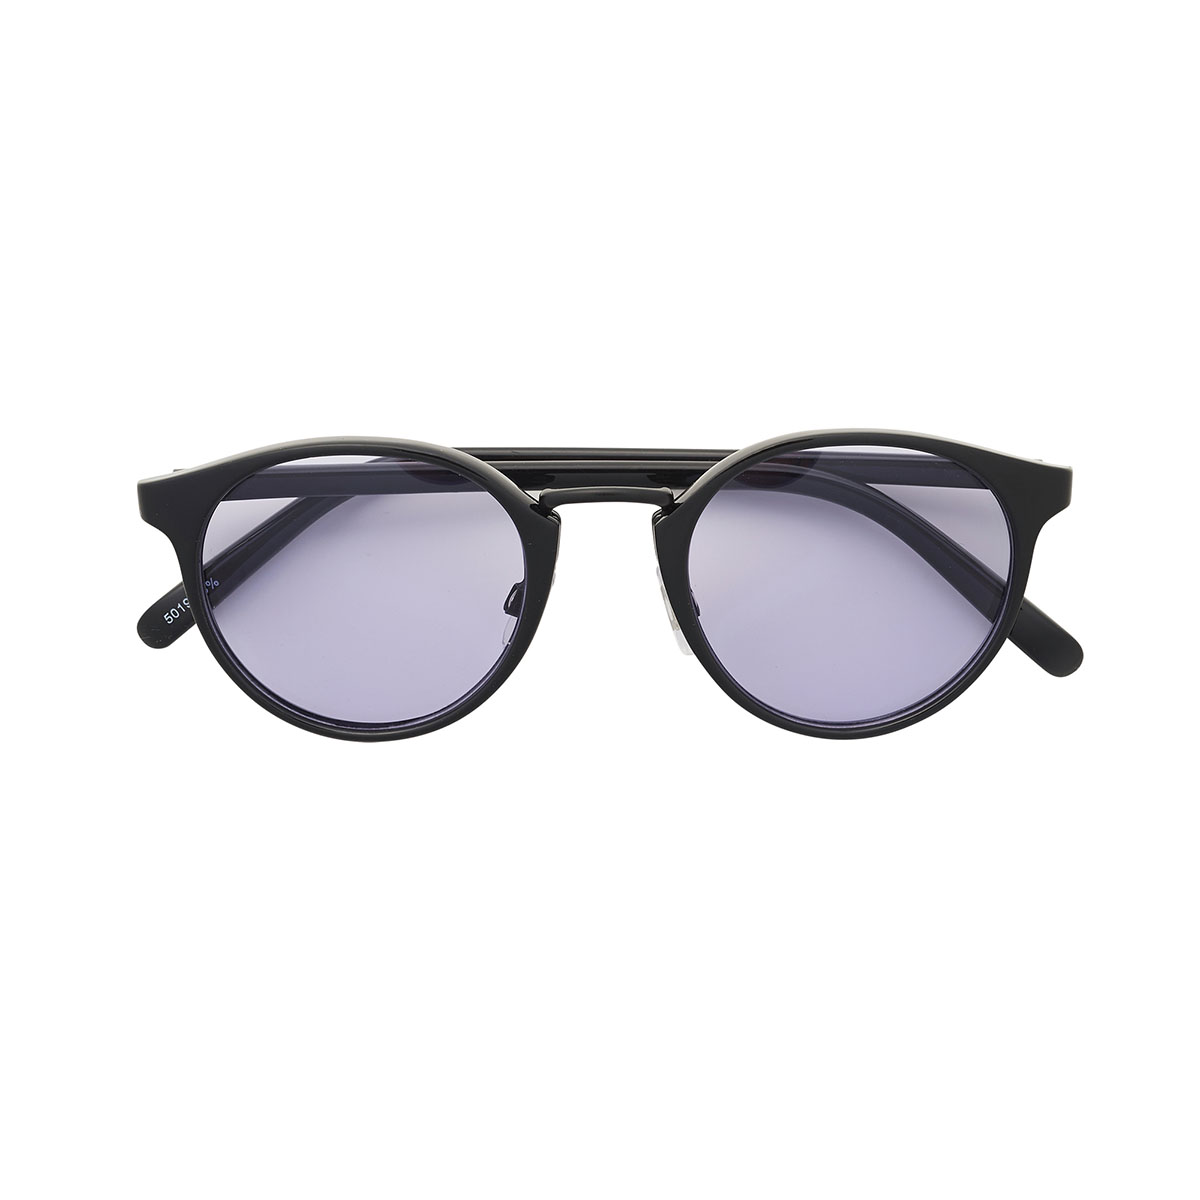 【予約商品】Zephyren(ゼファレン) SUNGLASS BOSTON BLACK / L.SMOKE